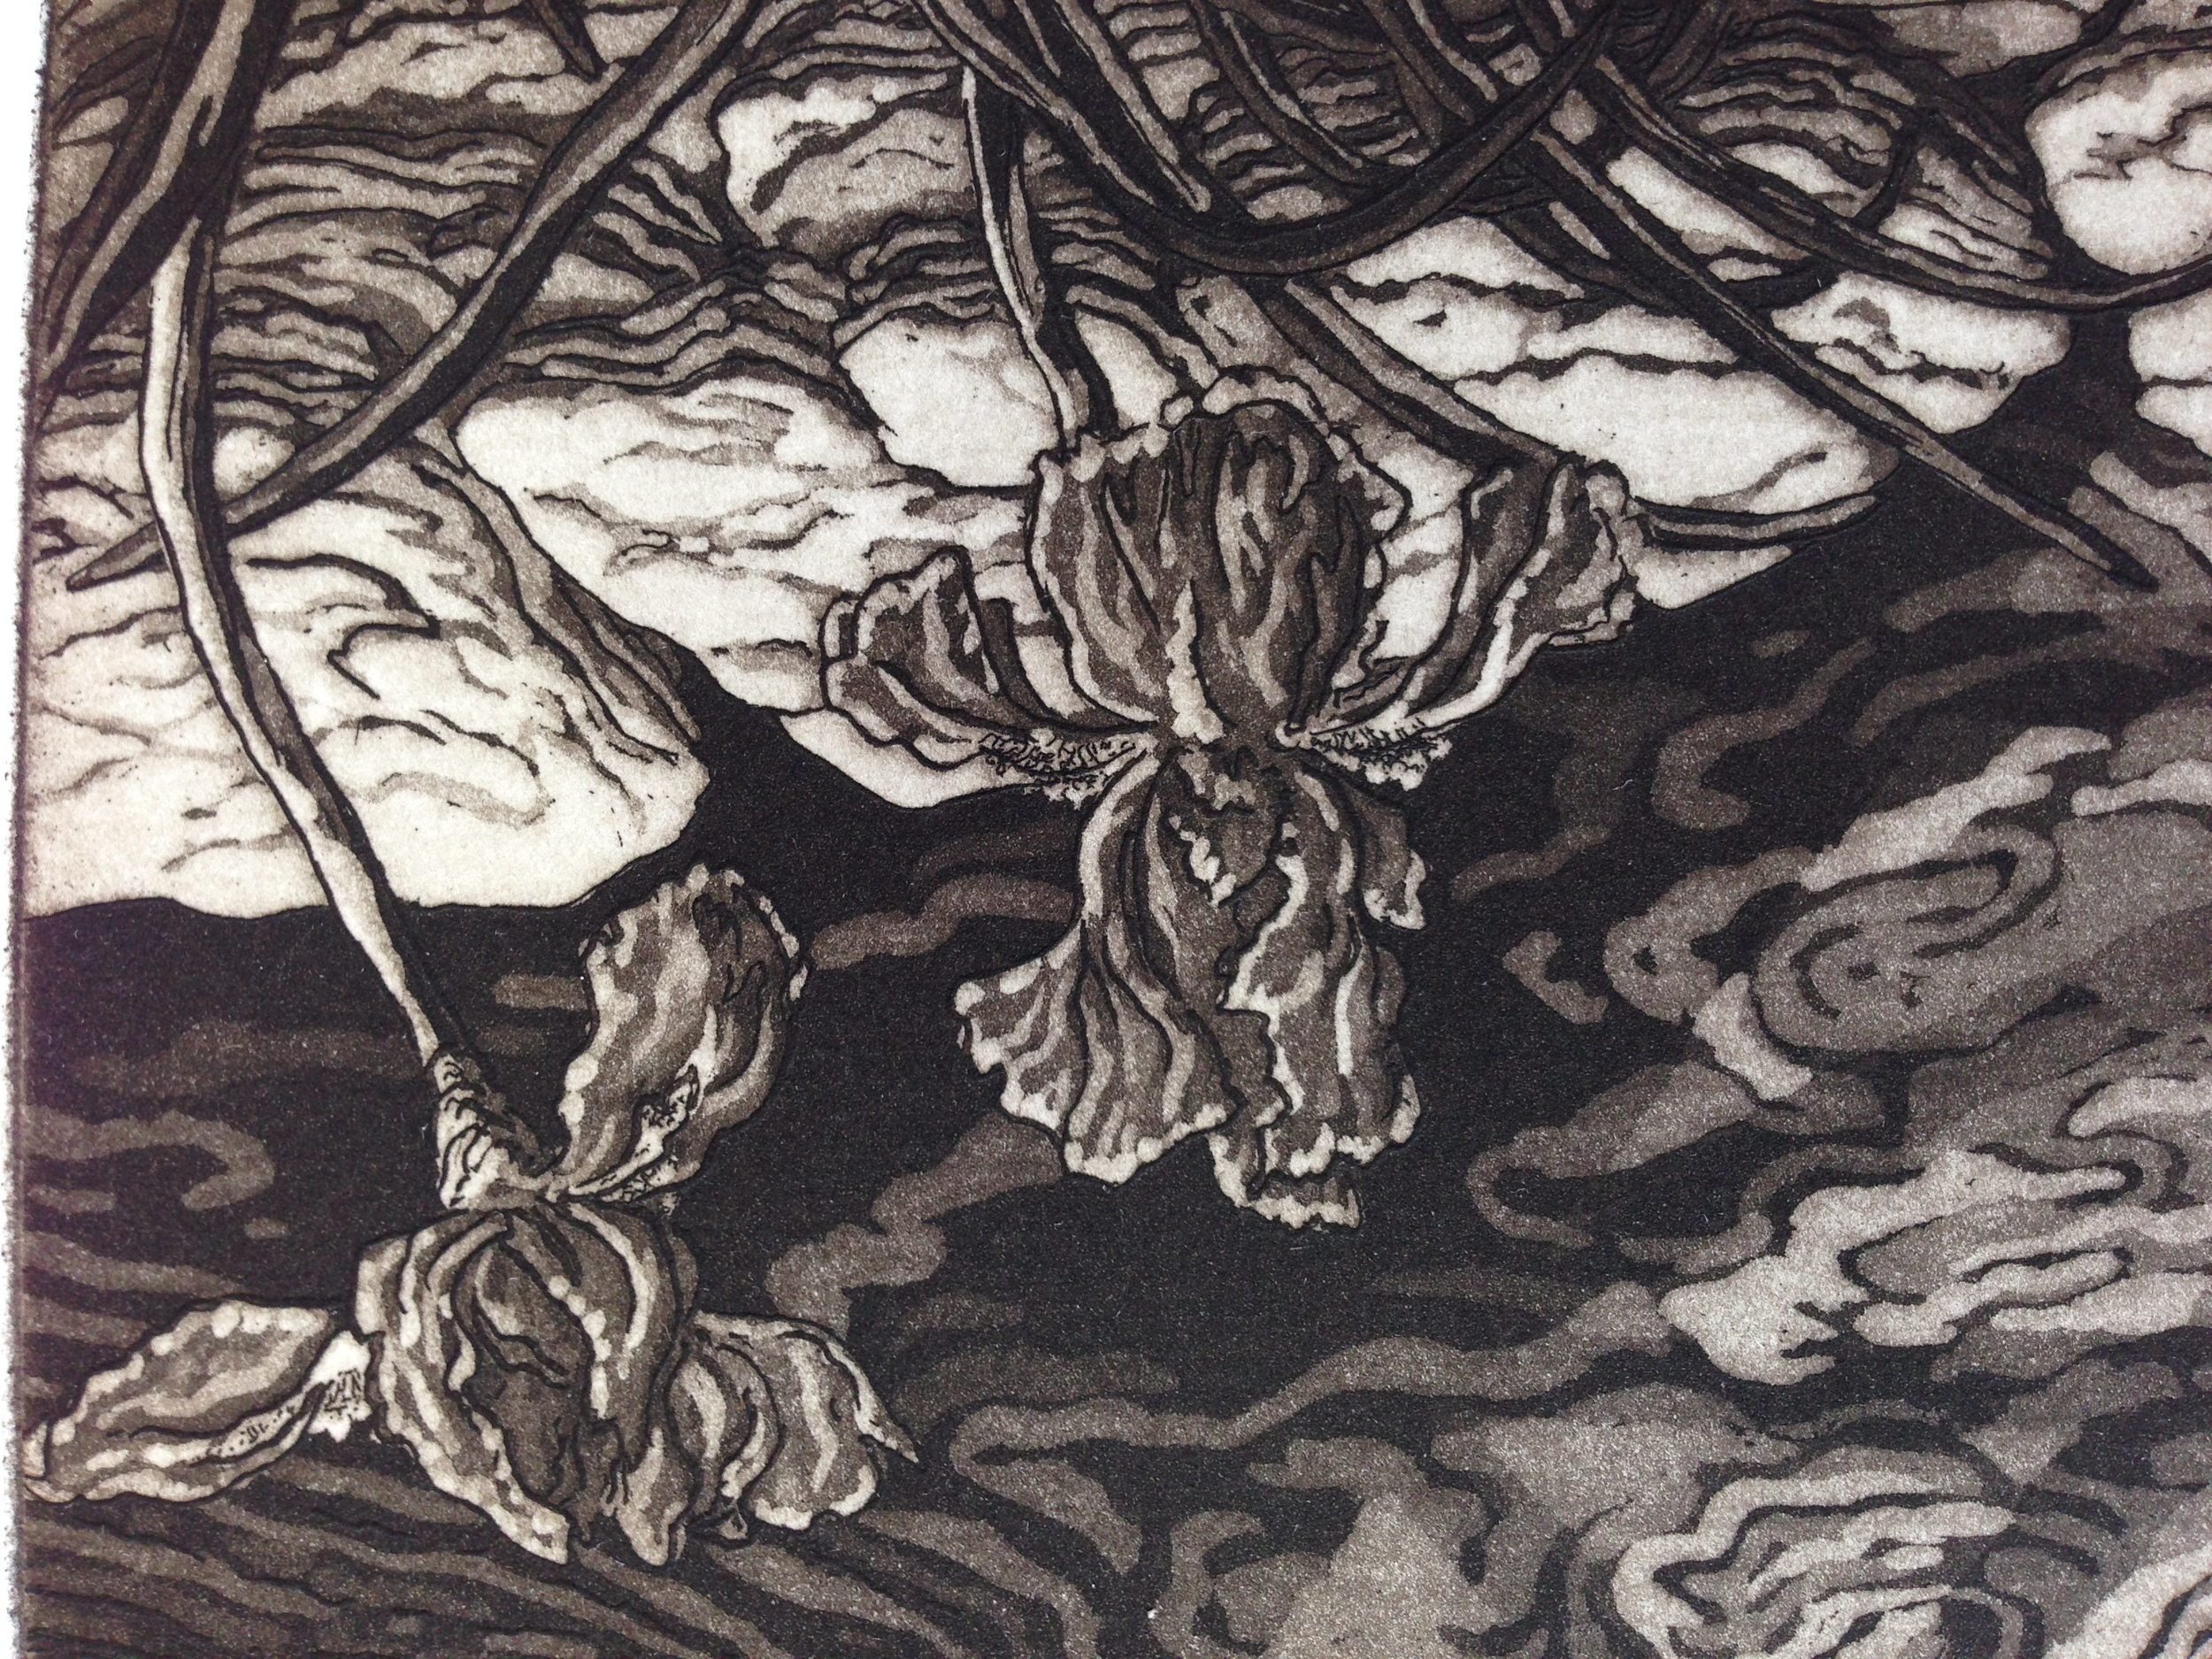 A detail shows six or seven different aquatint tones and textures. Very nice work by Jennifer Melby.